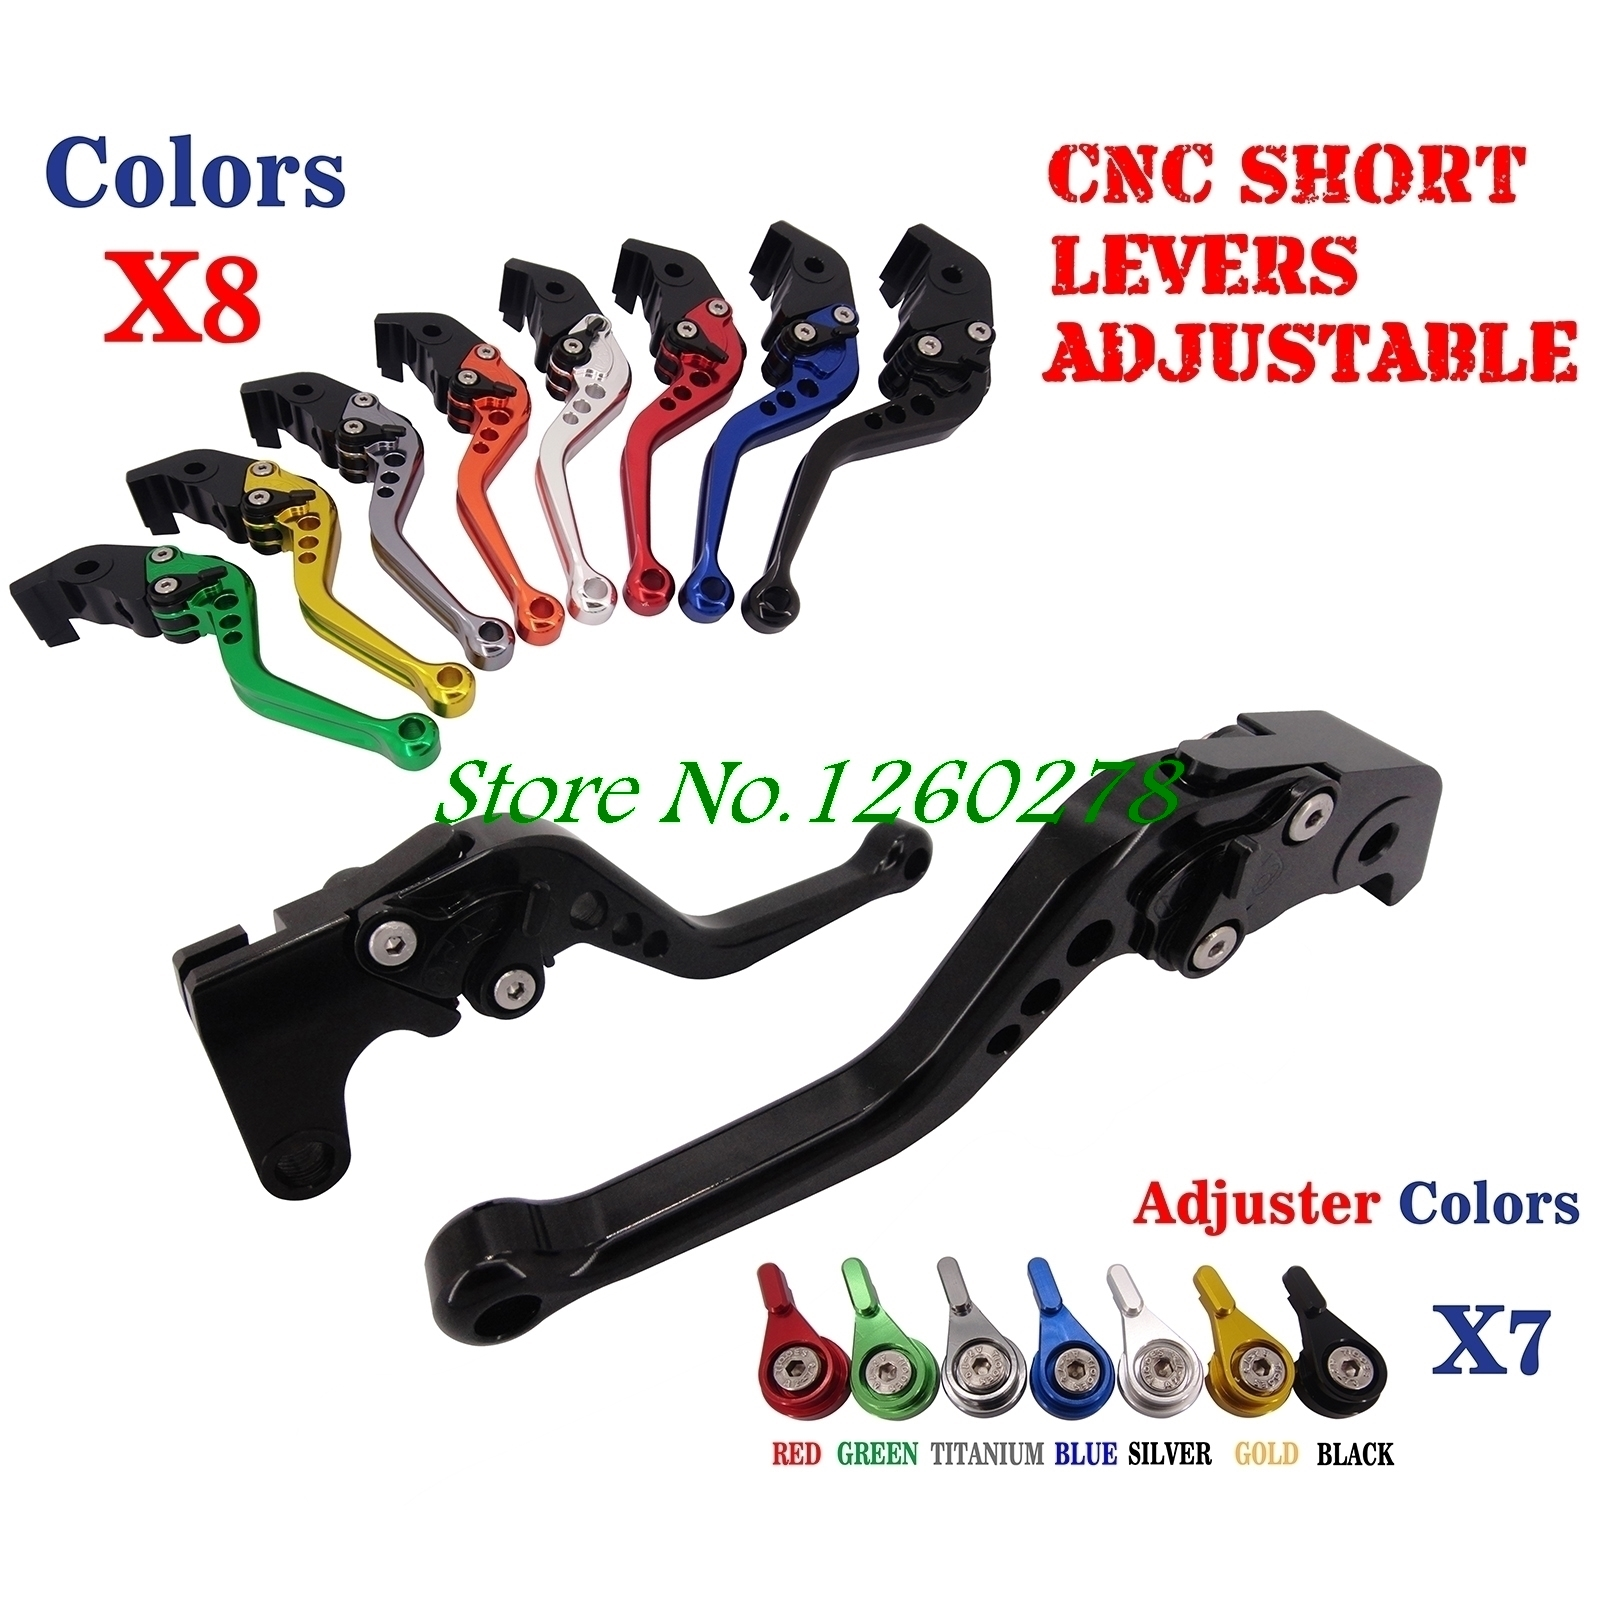 Motorcycle CNC Adjustable Brake Clutch Levers For Yamaha FJR1300 XJR1300/Racer 2004-2016 XT1200Z/ZE Super Tenere 2010-2016 cnc motorcycle adjustable folding extendable brake clutch lever for yamaha xt1200z ze super tenere 2010 2016 2012 2013 2014 2015